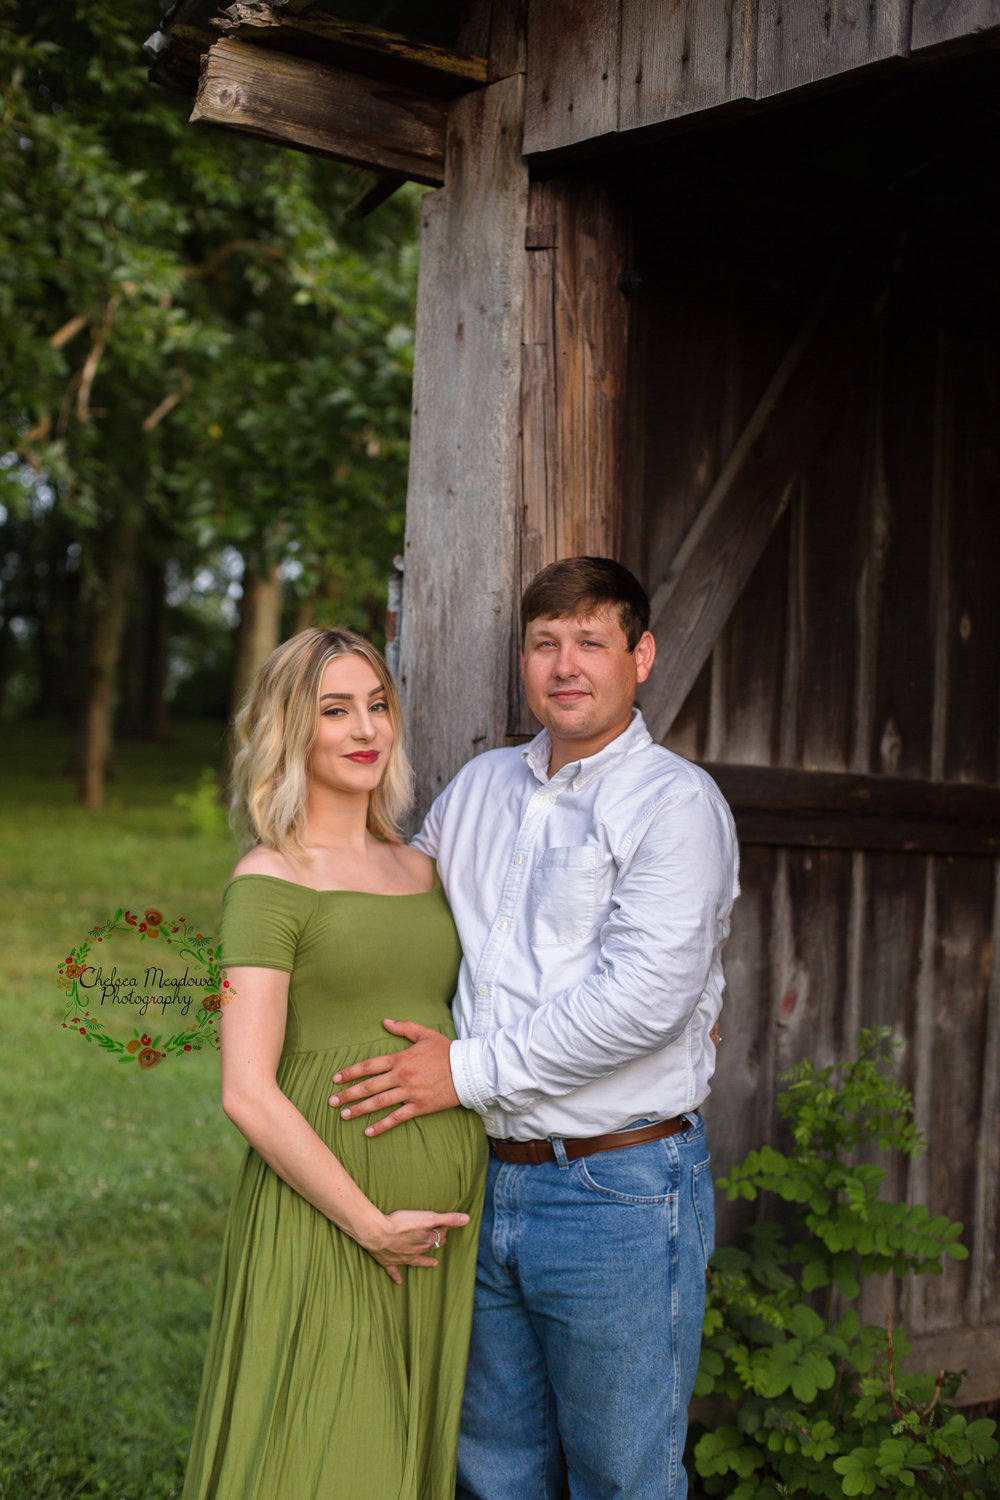 Maya Costanza Maternity - Nashville Maternity Photographer - Chelsea Meadows Photography (82).jpg